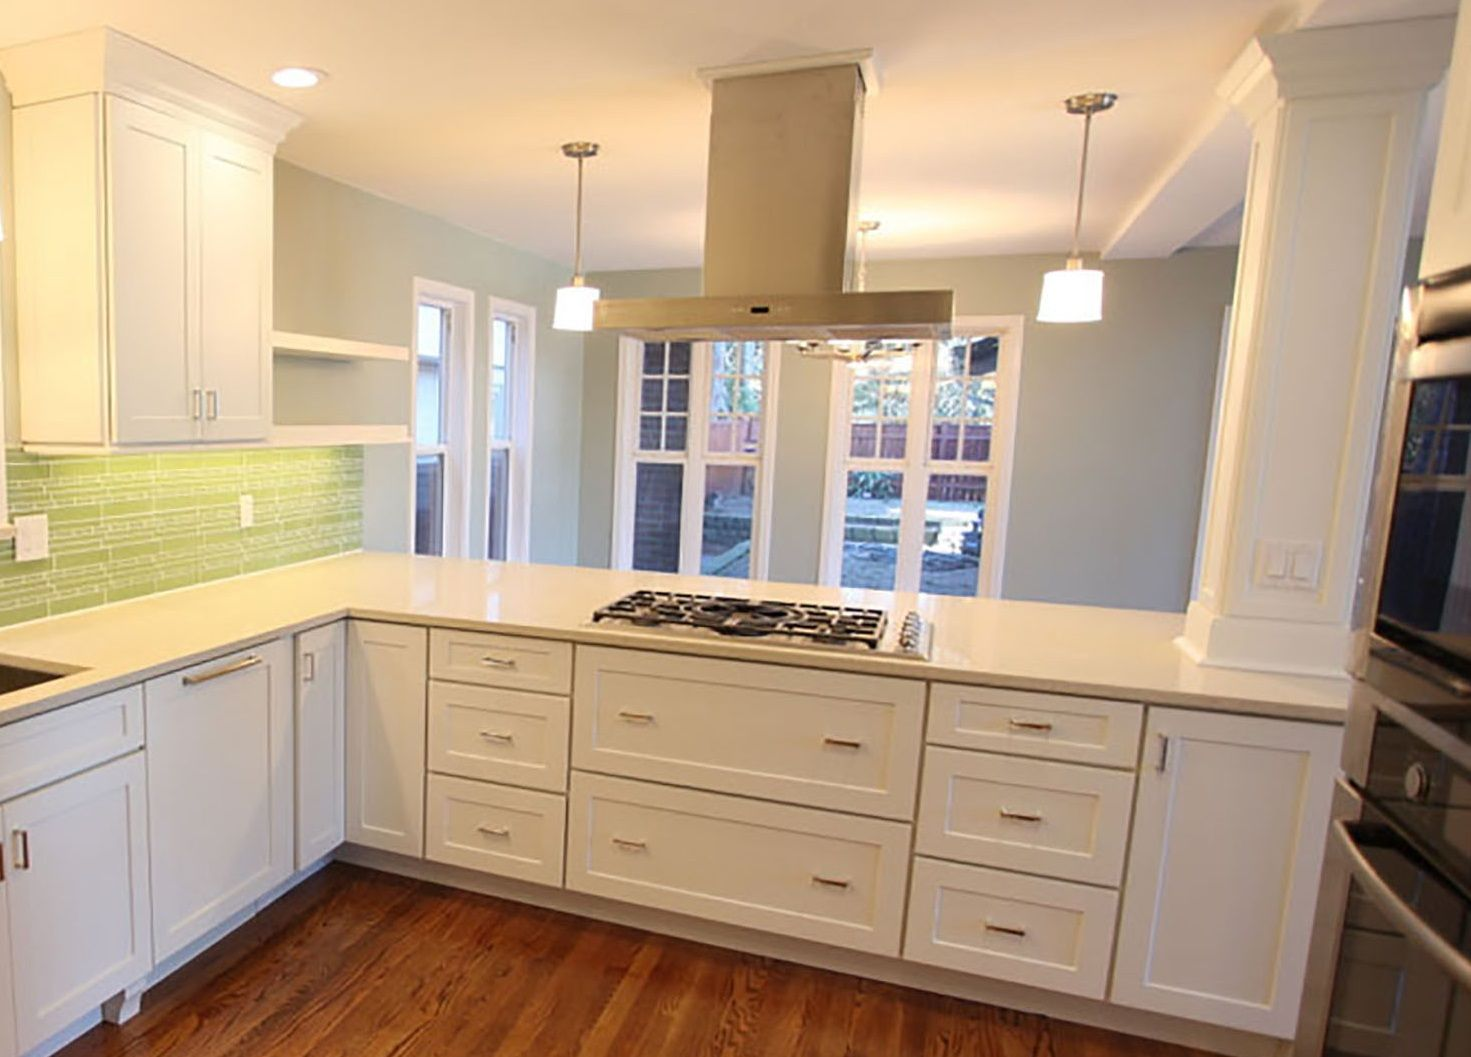 Kitchen Island With Cooktop Bar Height Tables Peninsula Stainless Range Hood And